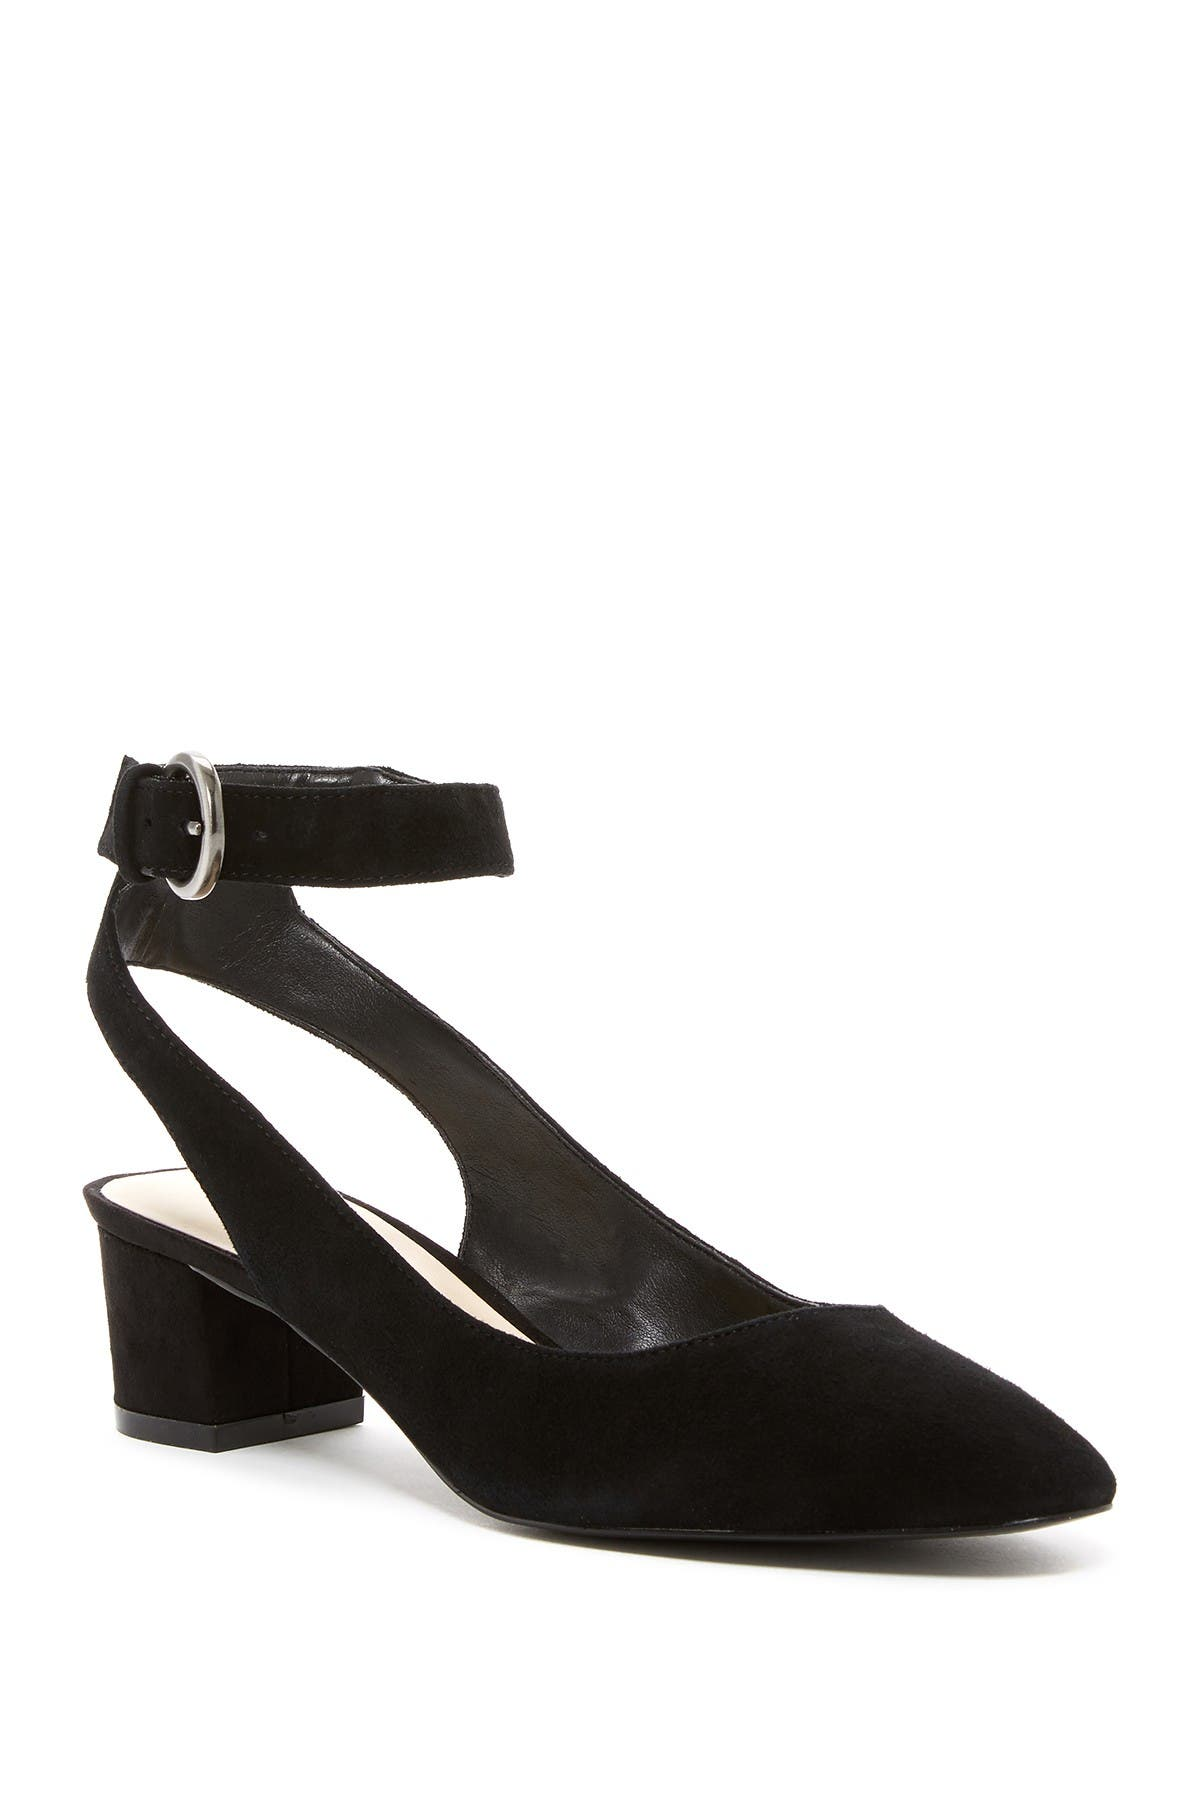 Image of Nine West Babes Suede Block Heel Dress Shoe